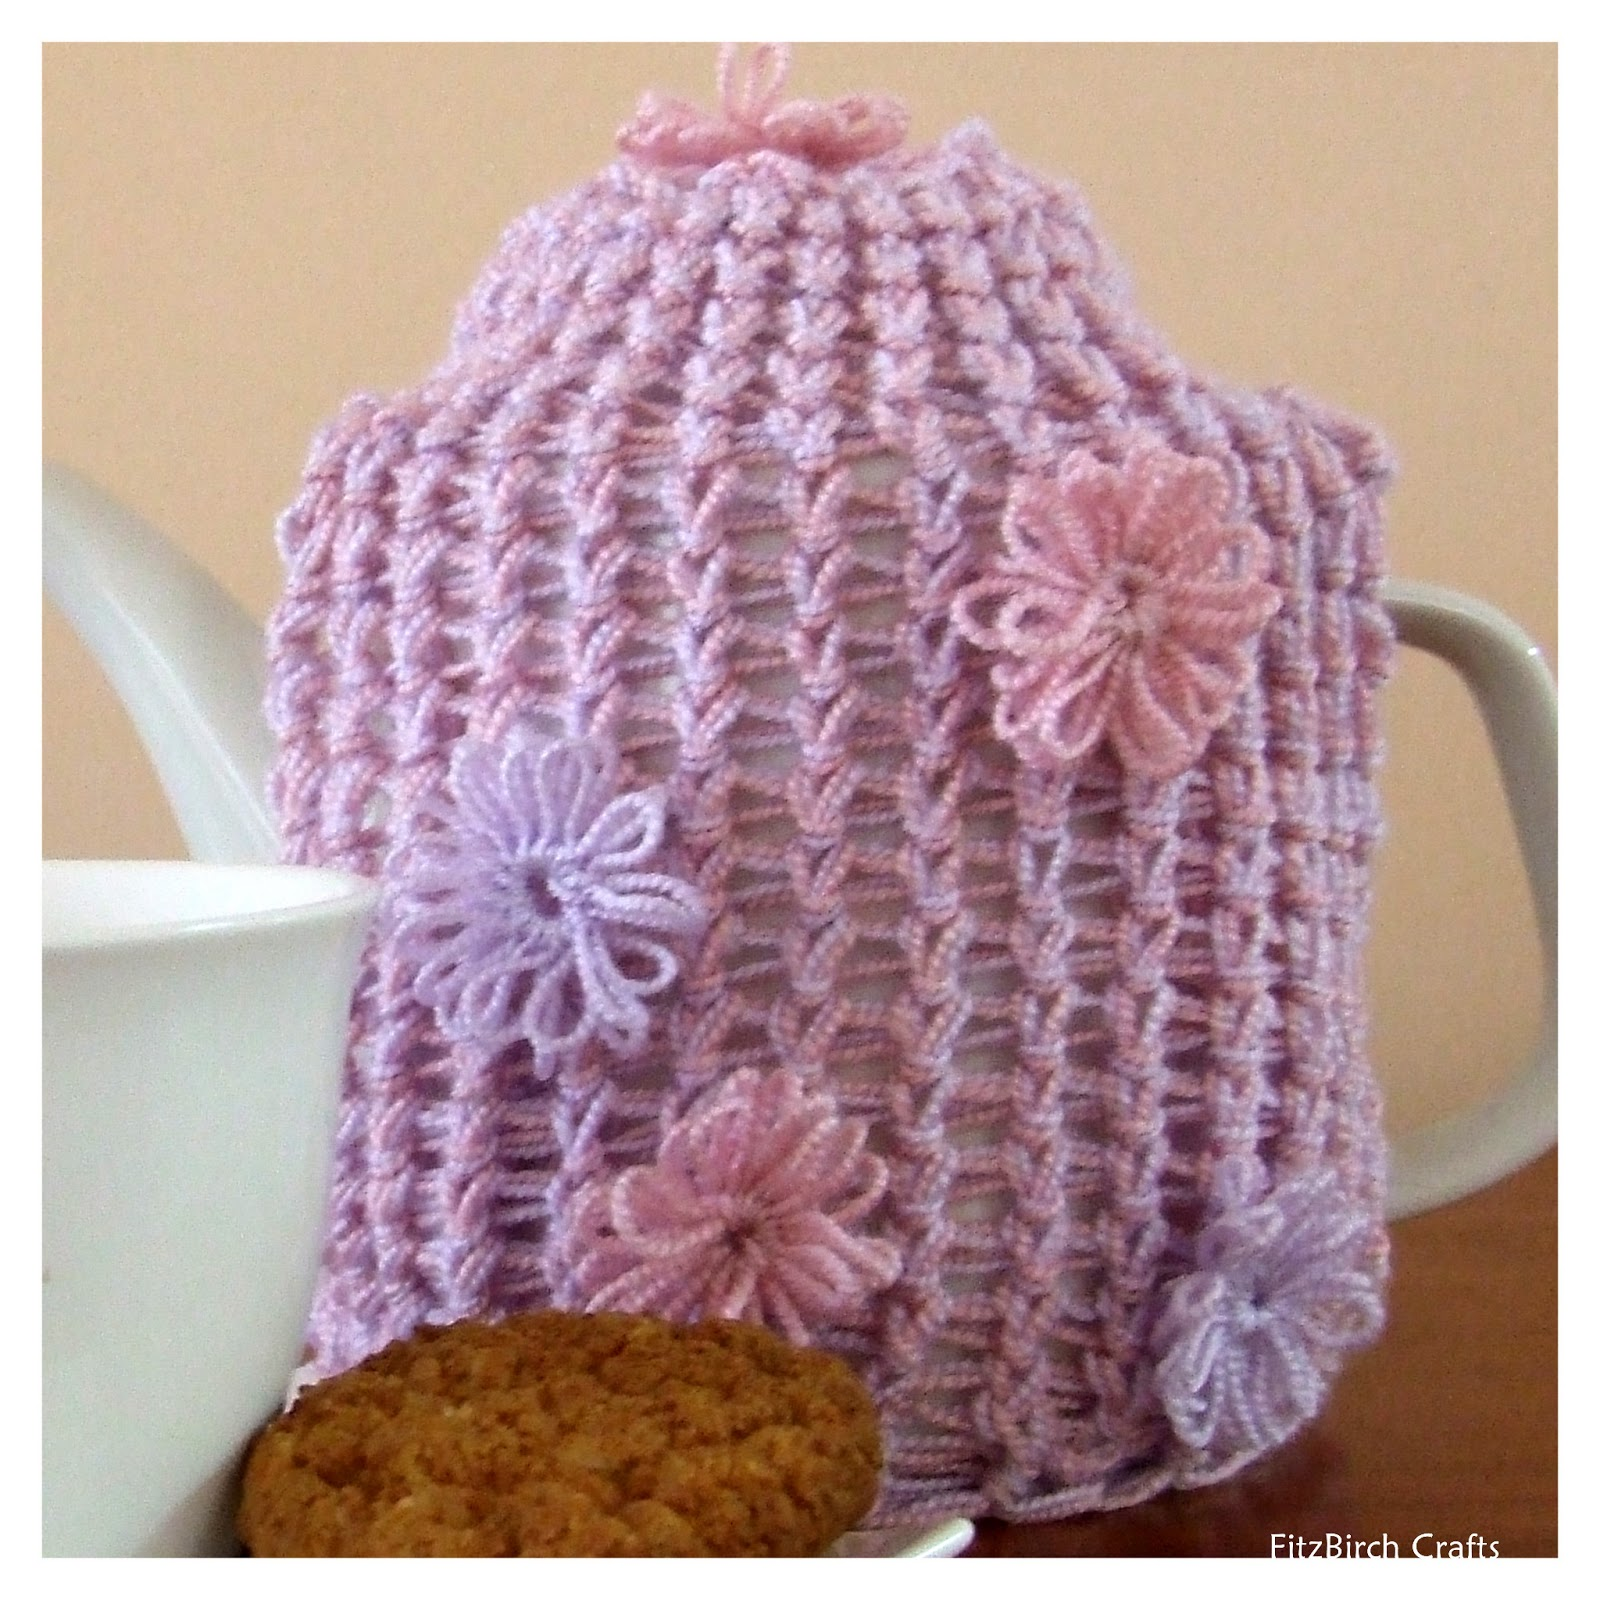 Knitting Loom Pattern : FitzBirch Crafts: Loom Knit Tea Cosy